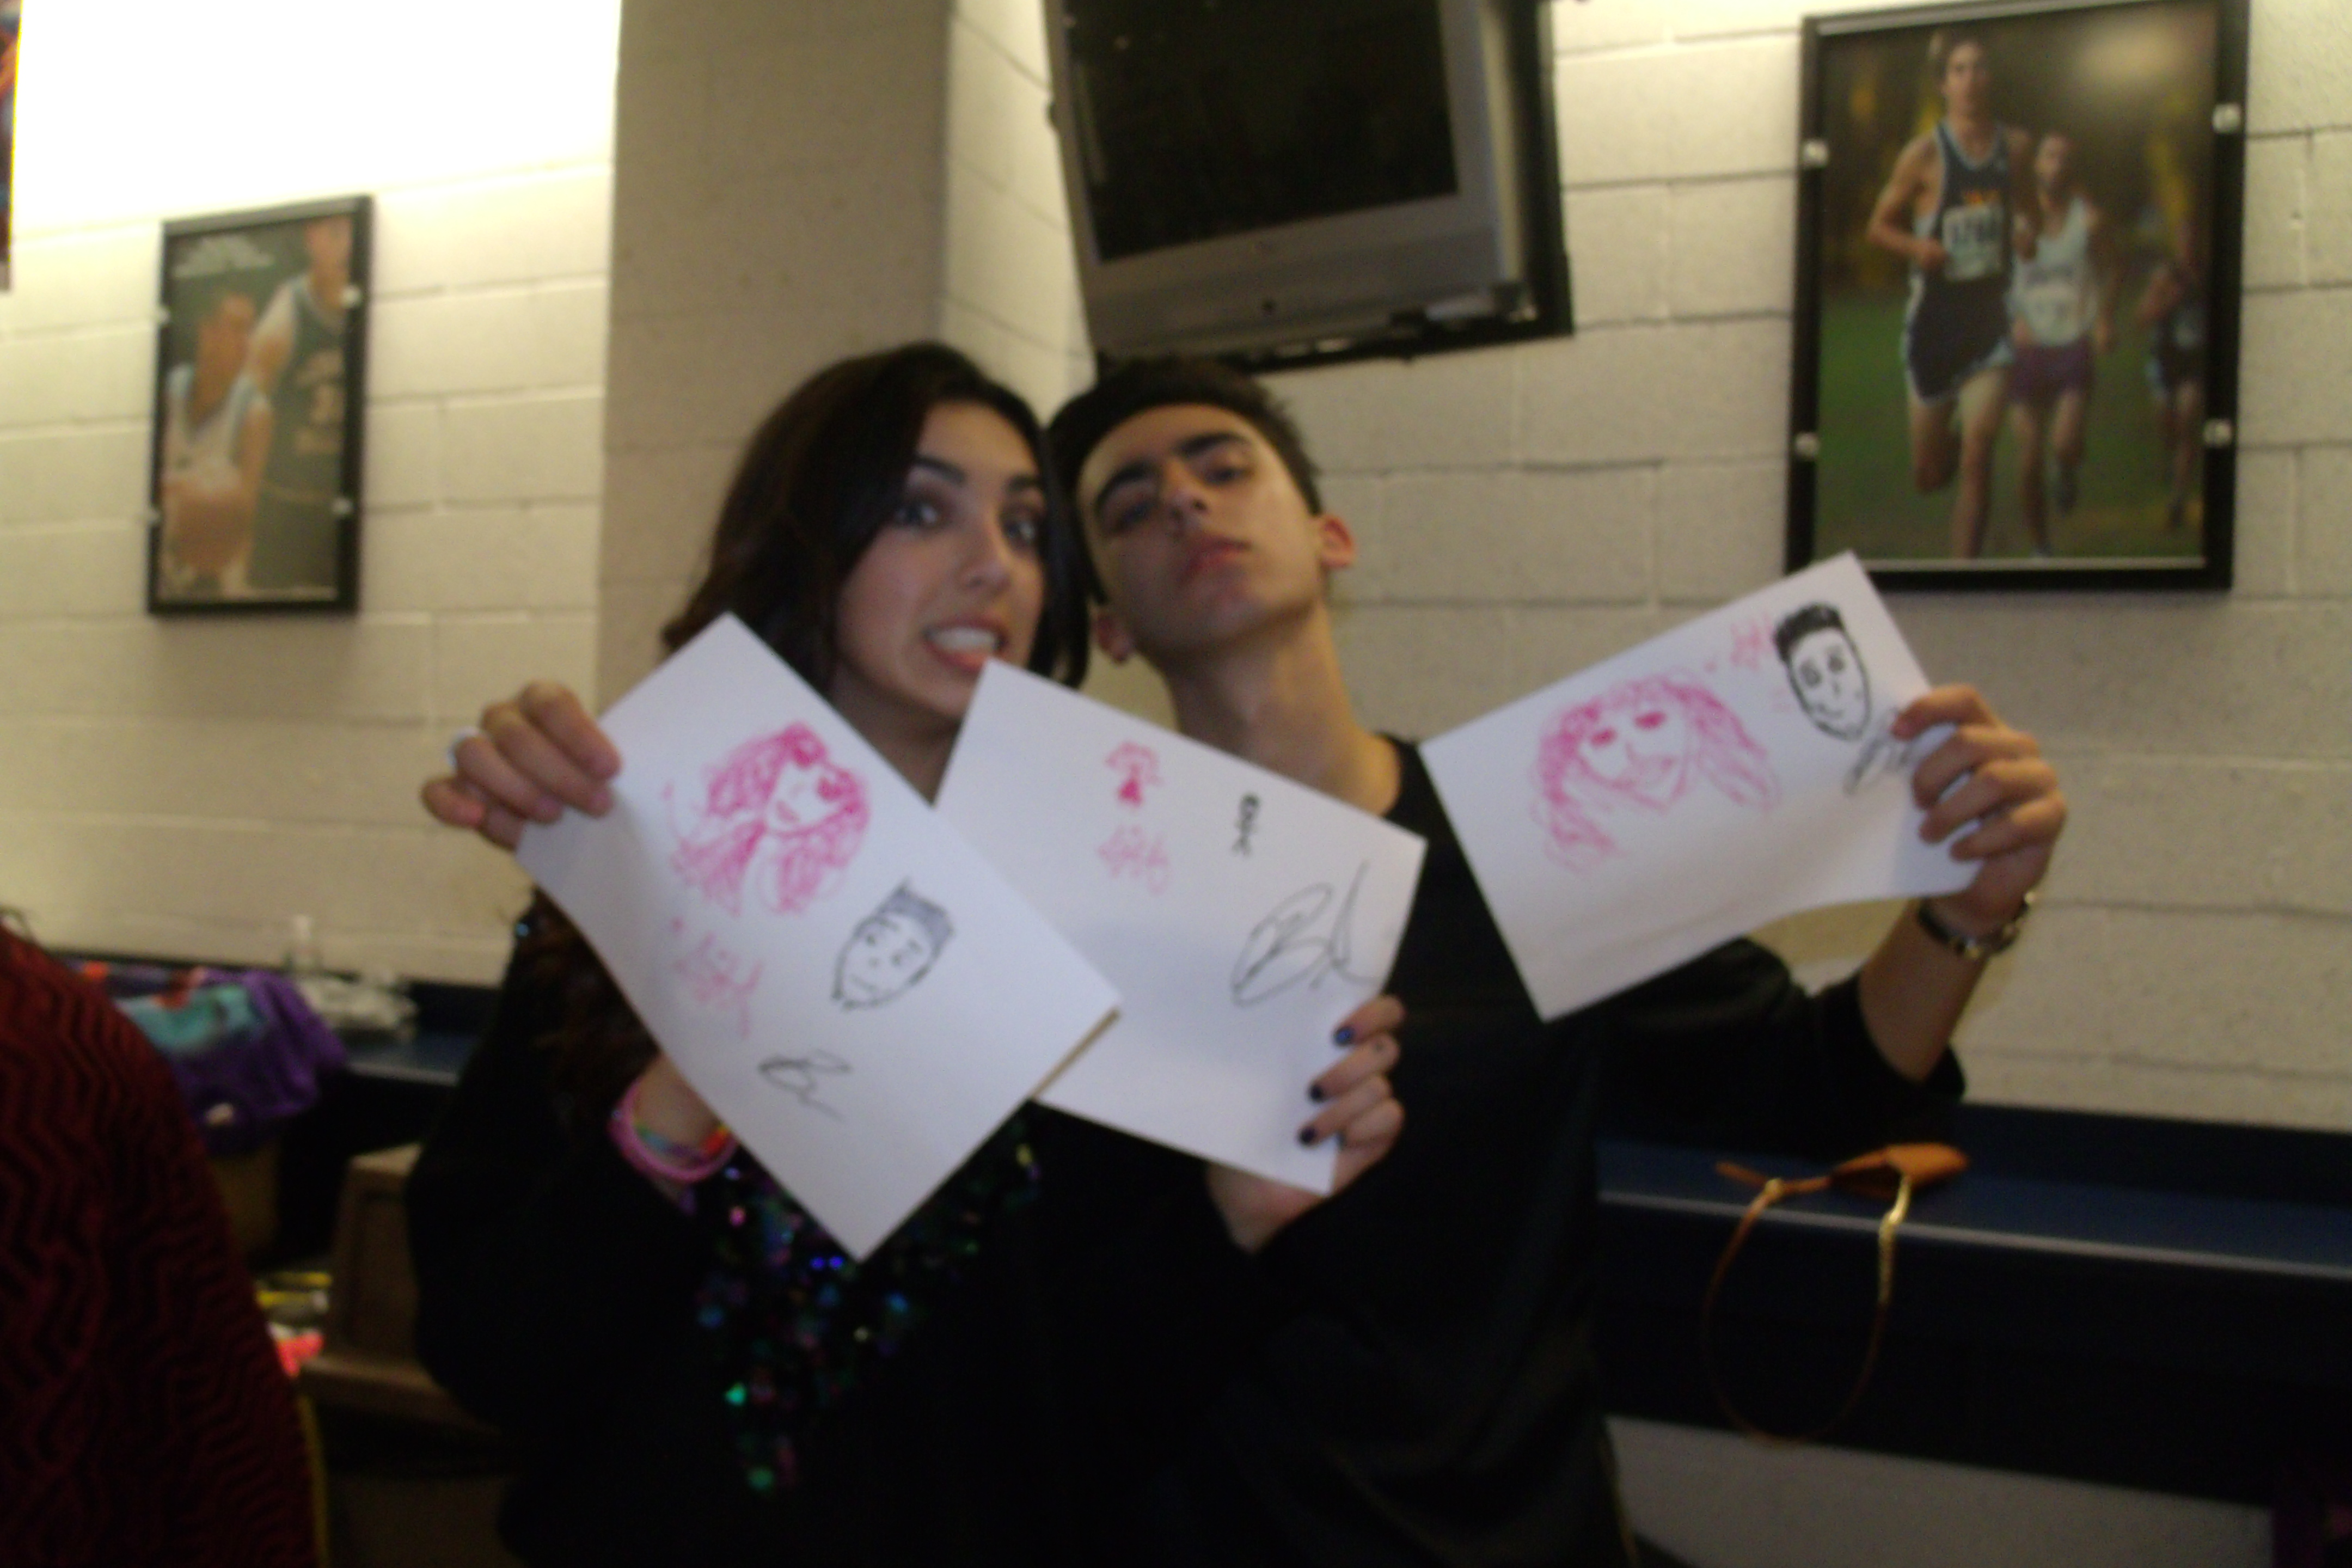 Brandon & Savannah goofing off with their drawings of themselves!